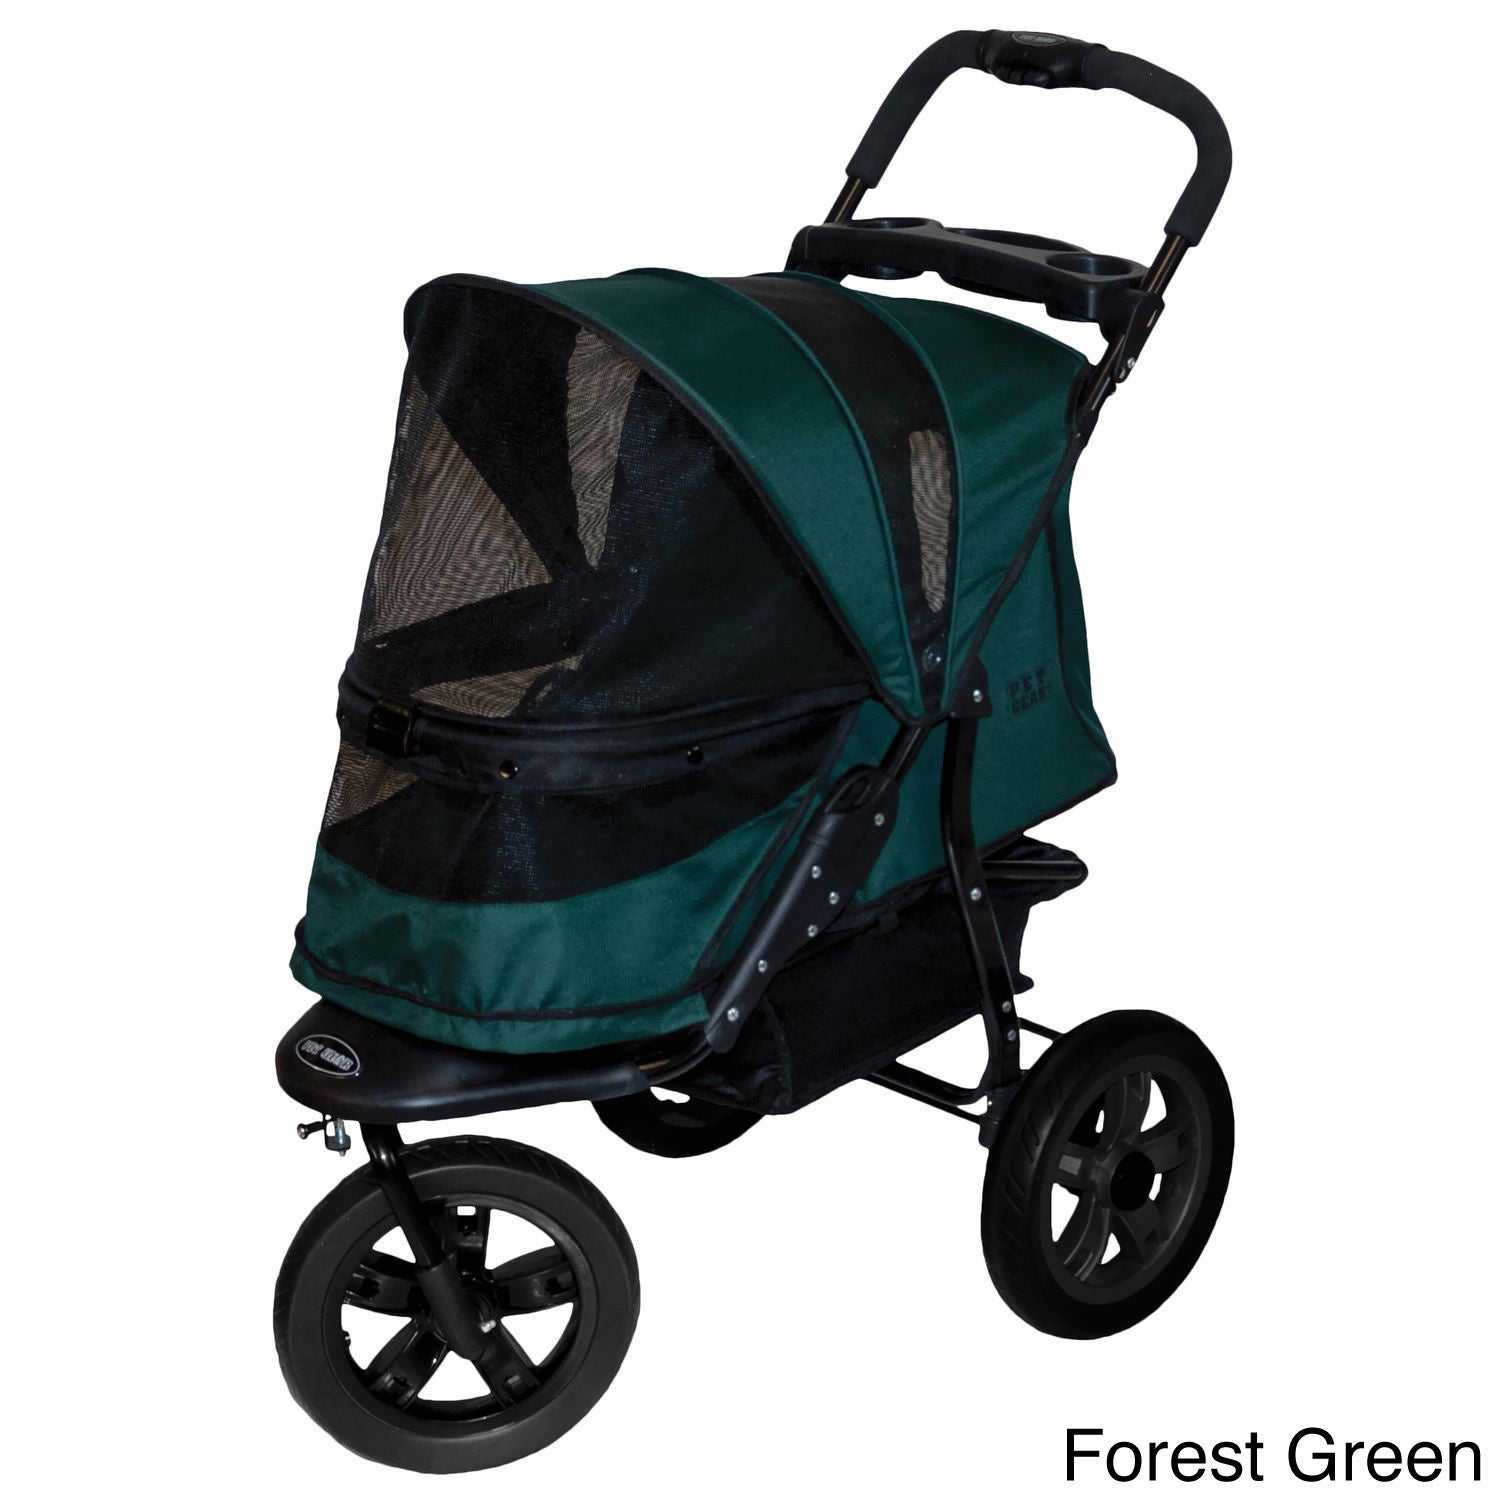 Pet Gear No-zip AT3 Pet Stroller (Forest Green), Size Medium